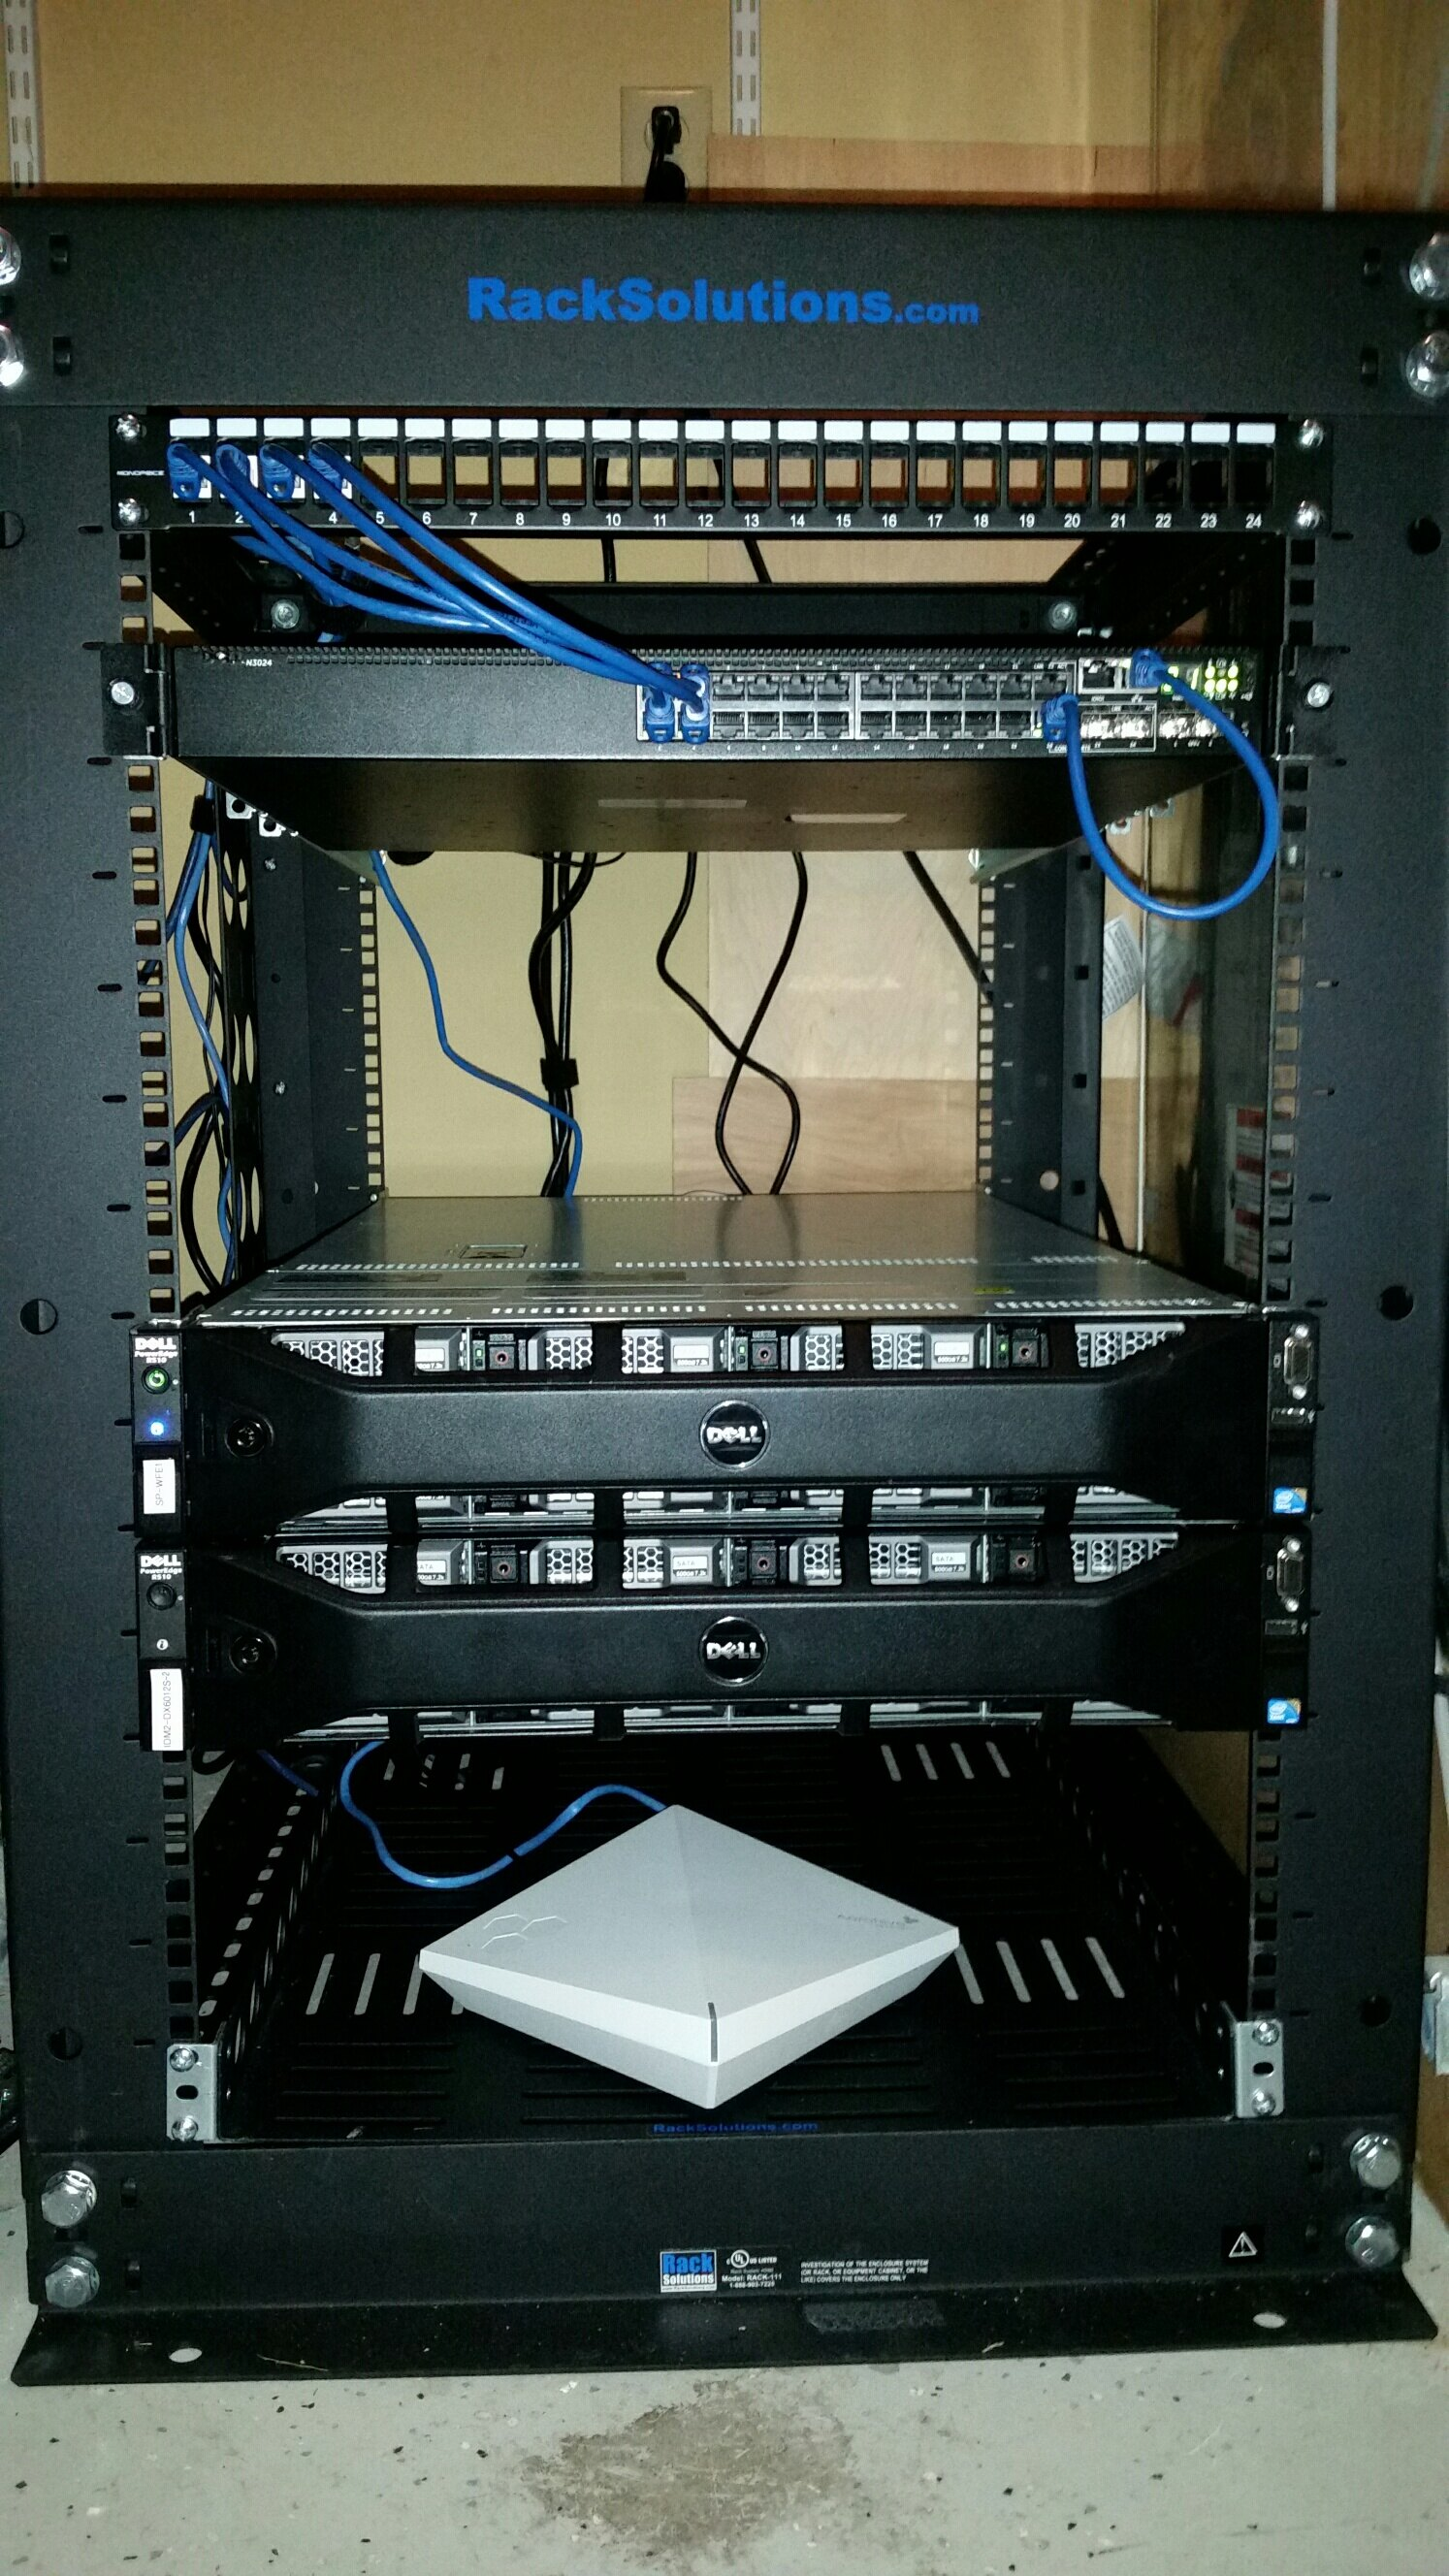 Rack For Home Lab Racksolutions